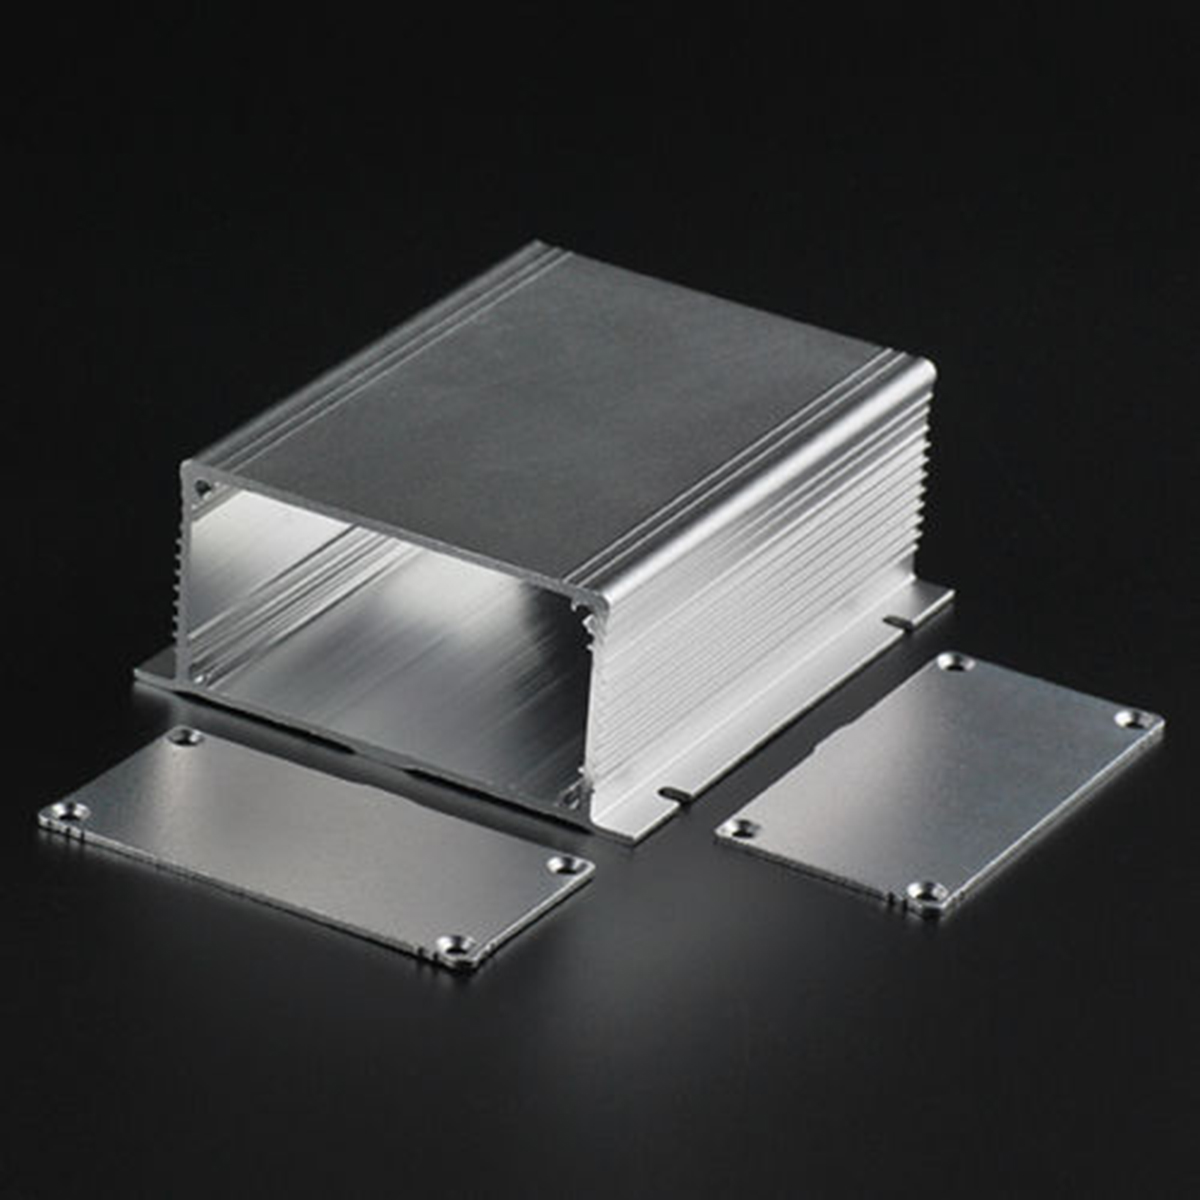 Electronic Aluminum Enclosure Silver Extruded Power PCB Instrument Box Case 88x39x100mm наборы для поделок djeco танграм магнитный